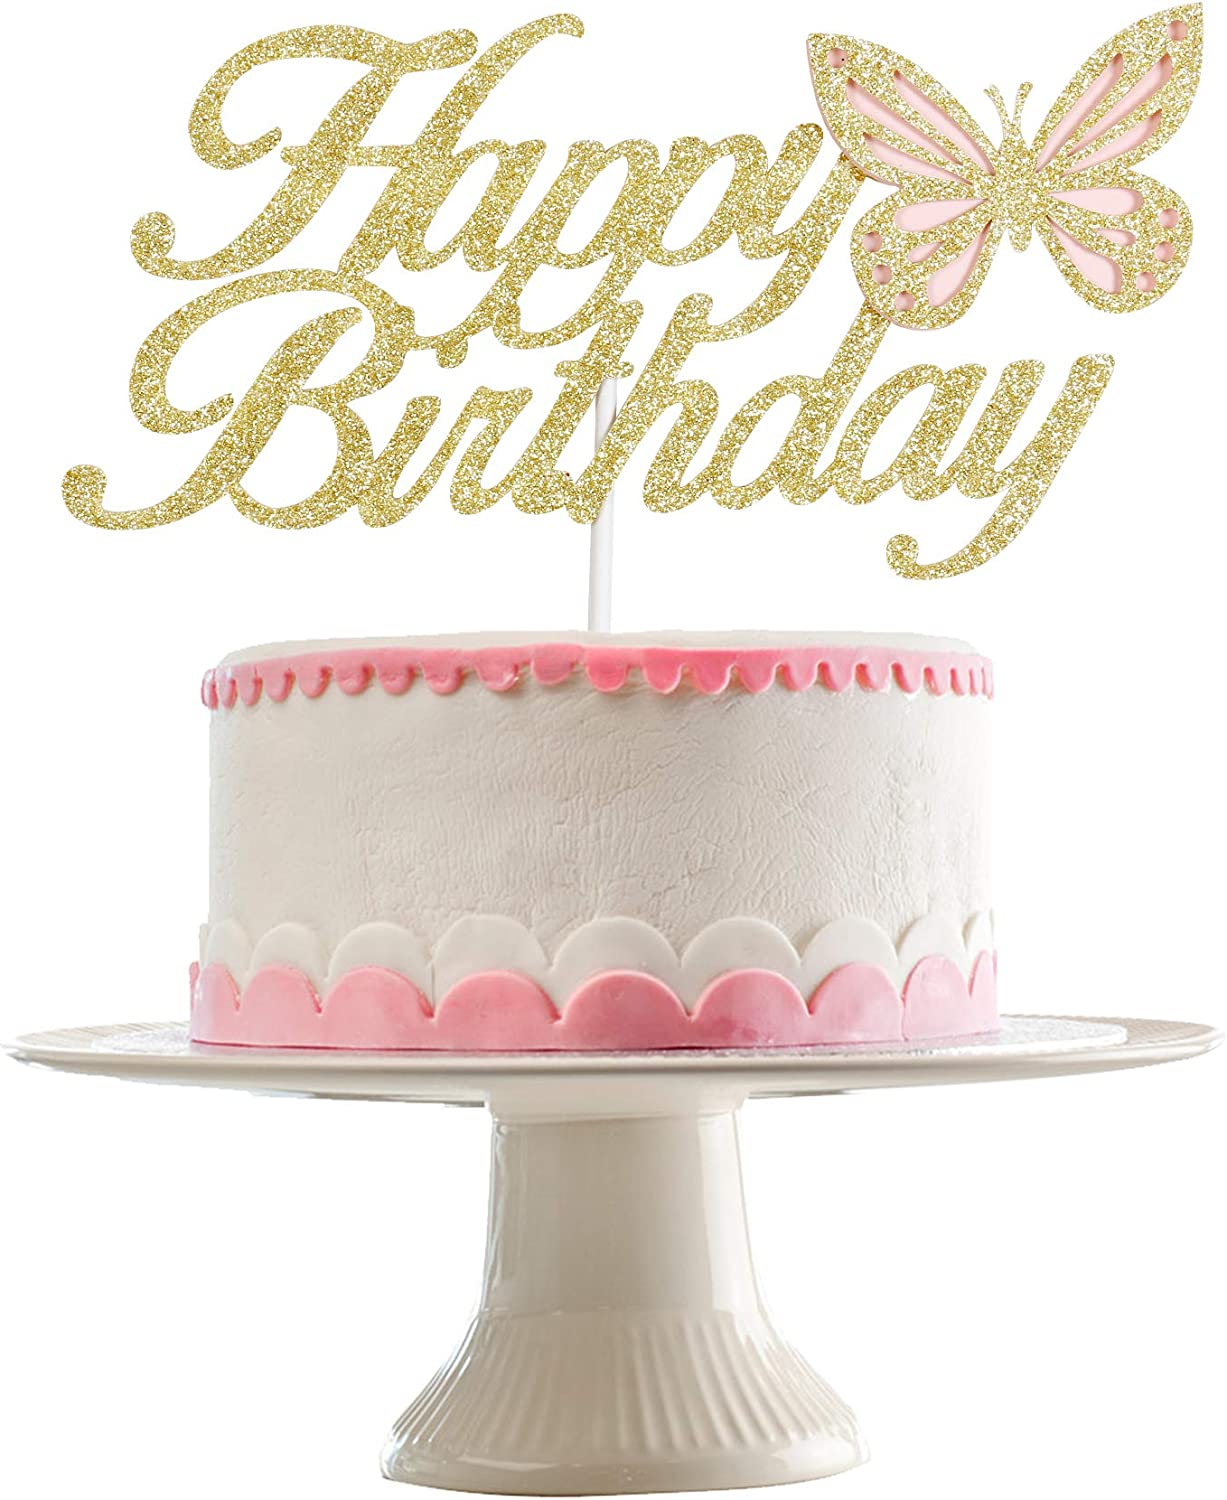 Happy Birthday Cake Atlanta Mall Topper Decorations Gold- Butterfly Spring new work